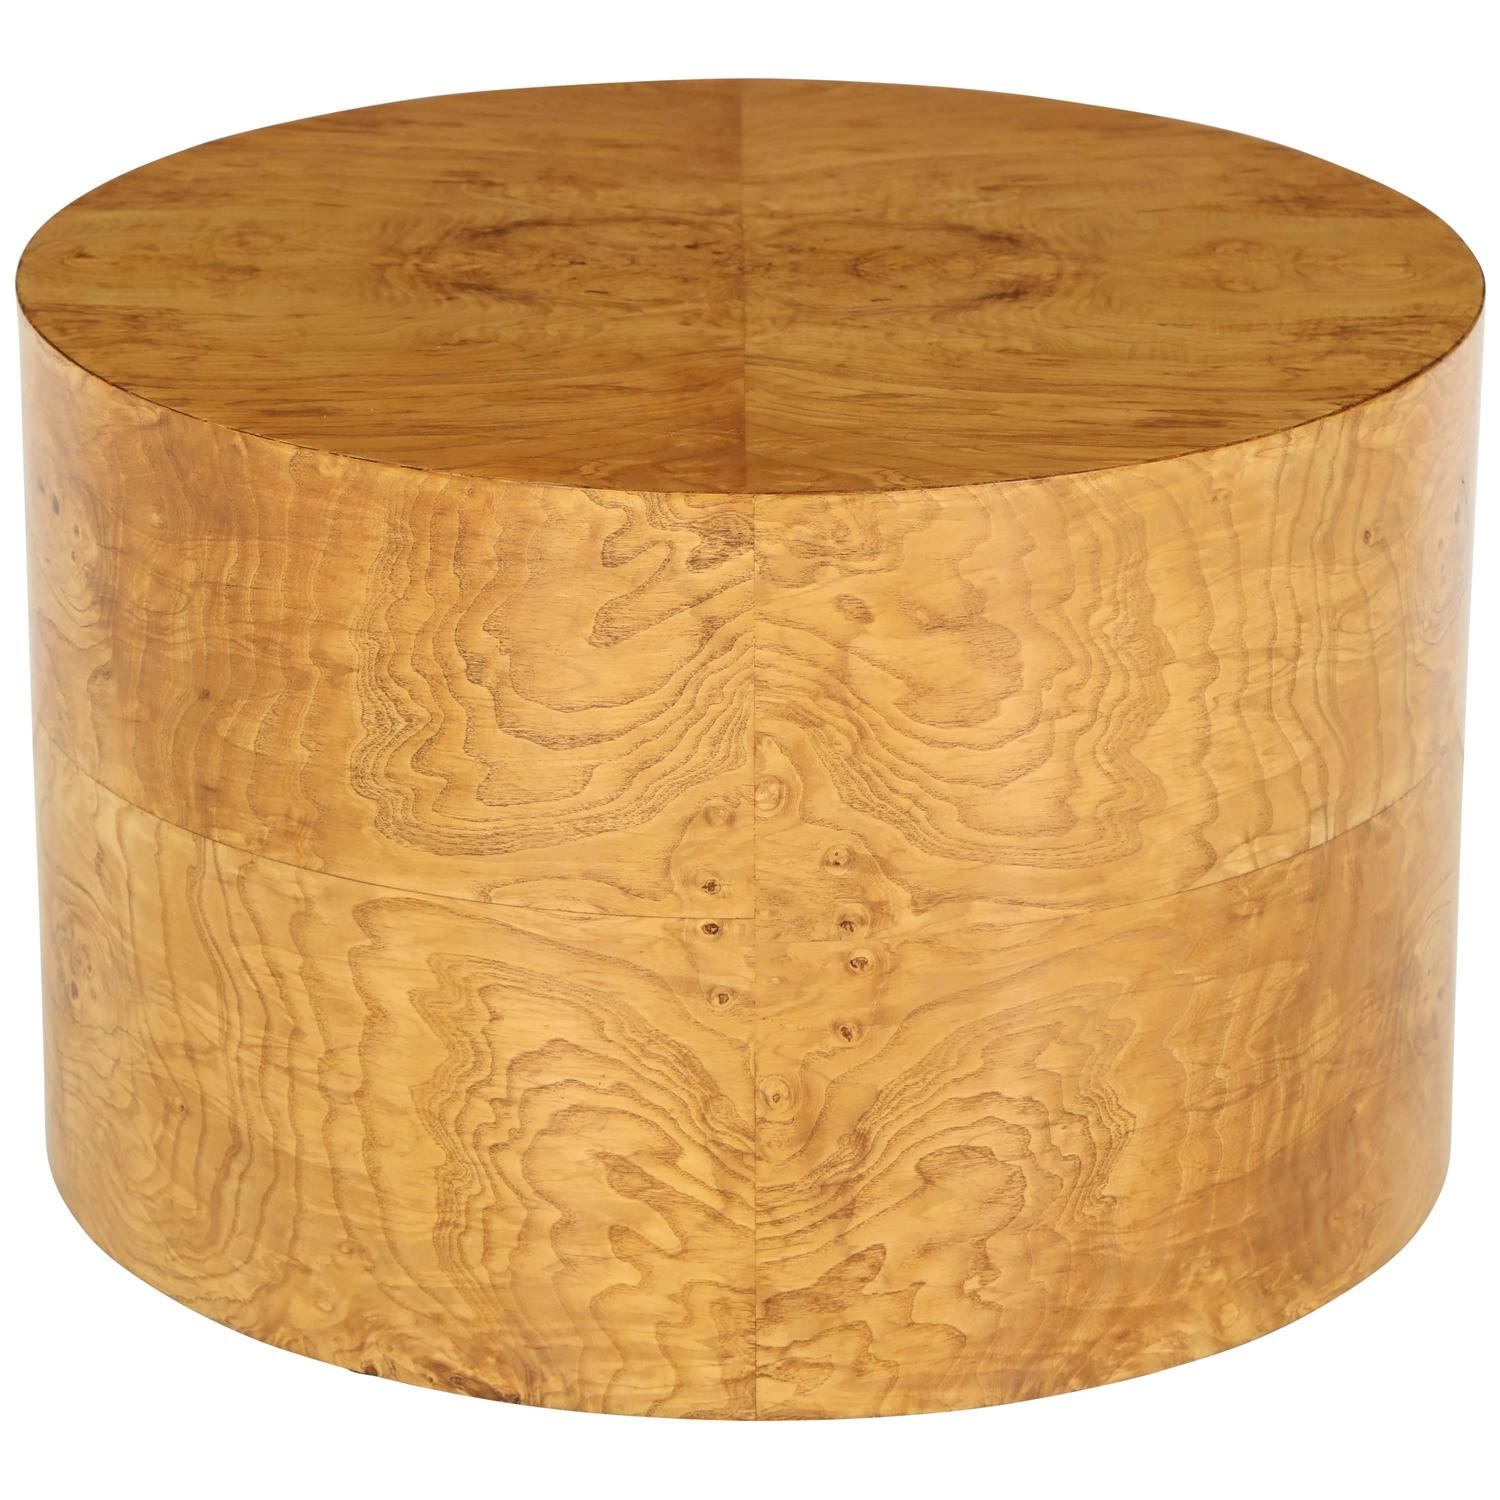 1970s Milo Baughman Burl Wood Drum Shaped Cocktail Table For Sale At 1stdibs